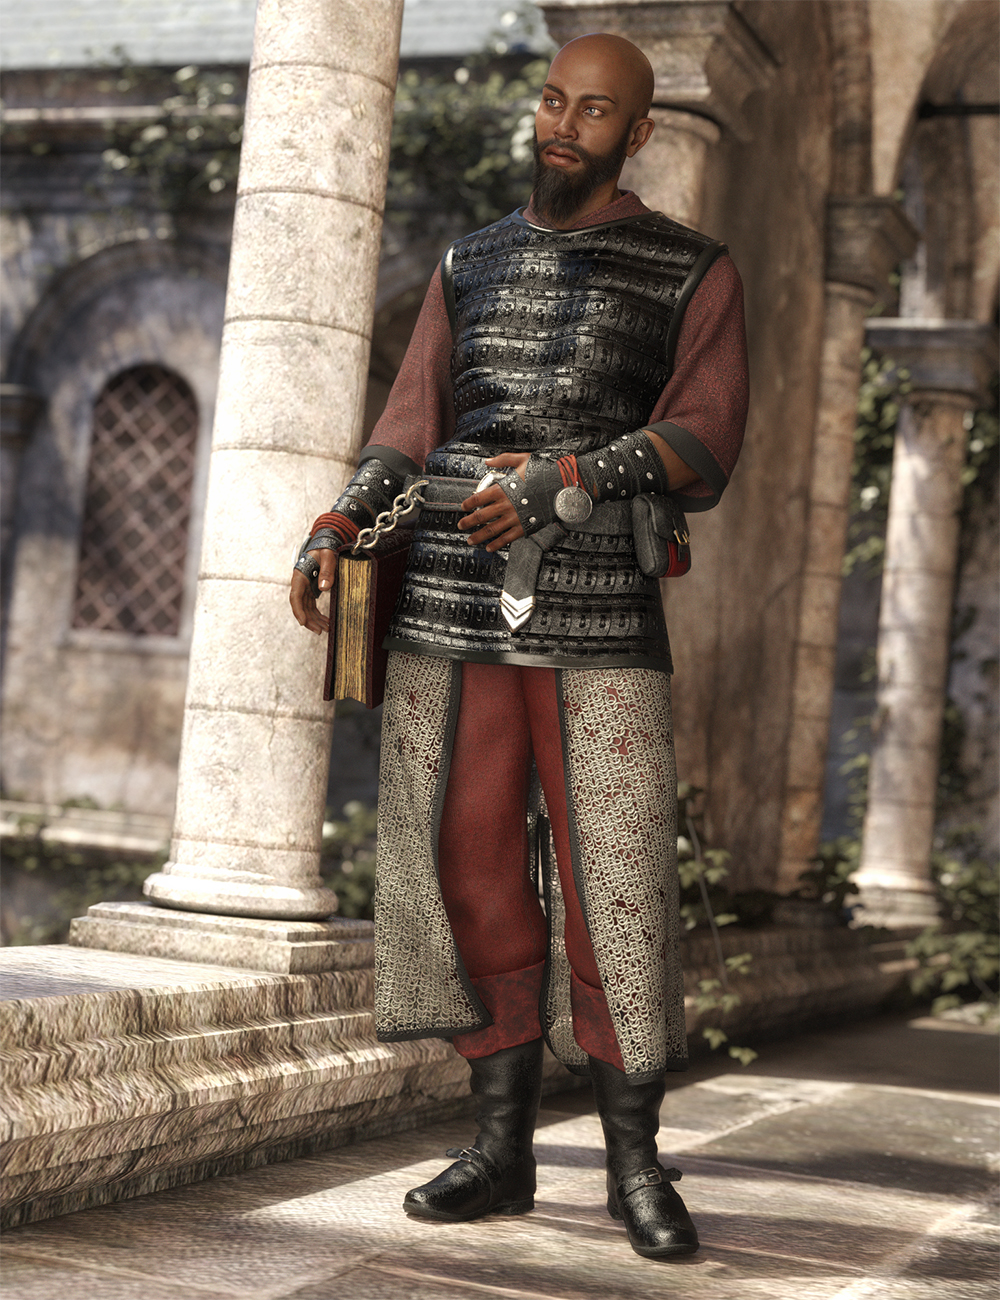 dForce Cleric Outfit for Genesis 8 Male(s) by: MadaMoonscape GraphicsSade, 3D Models by Daz 3D